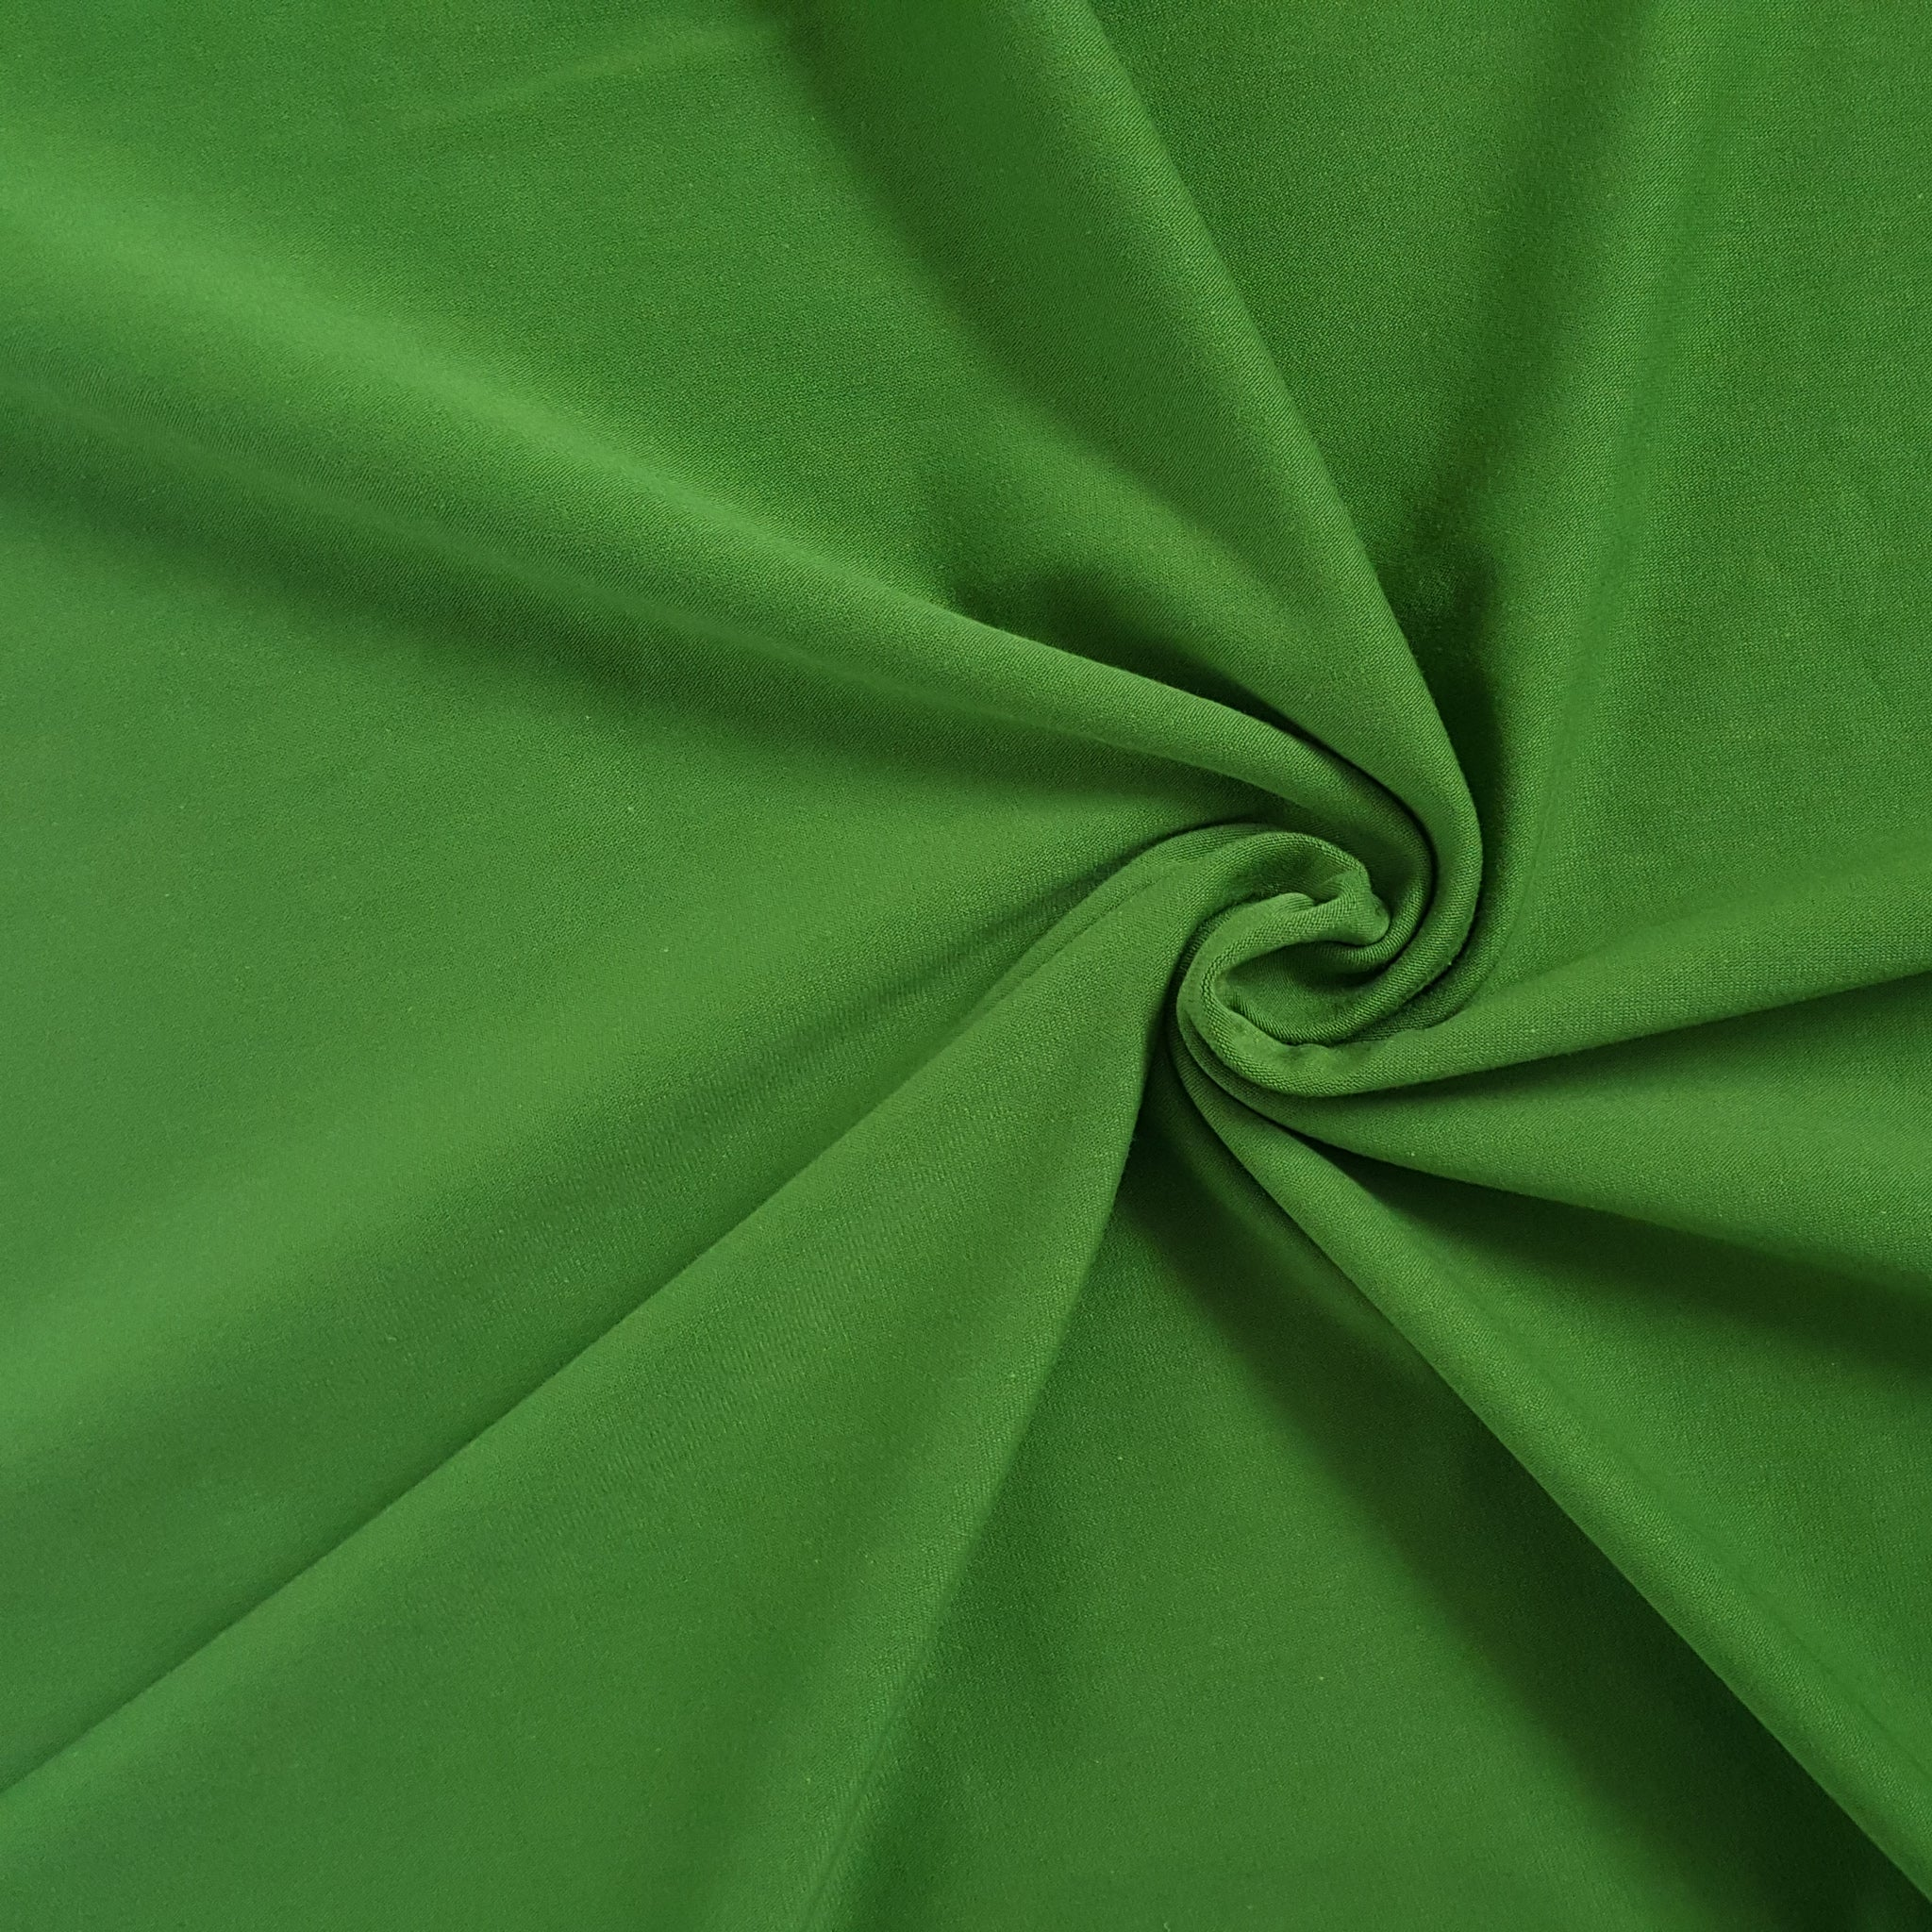 kale green cotton jersey fabric